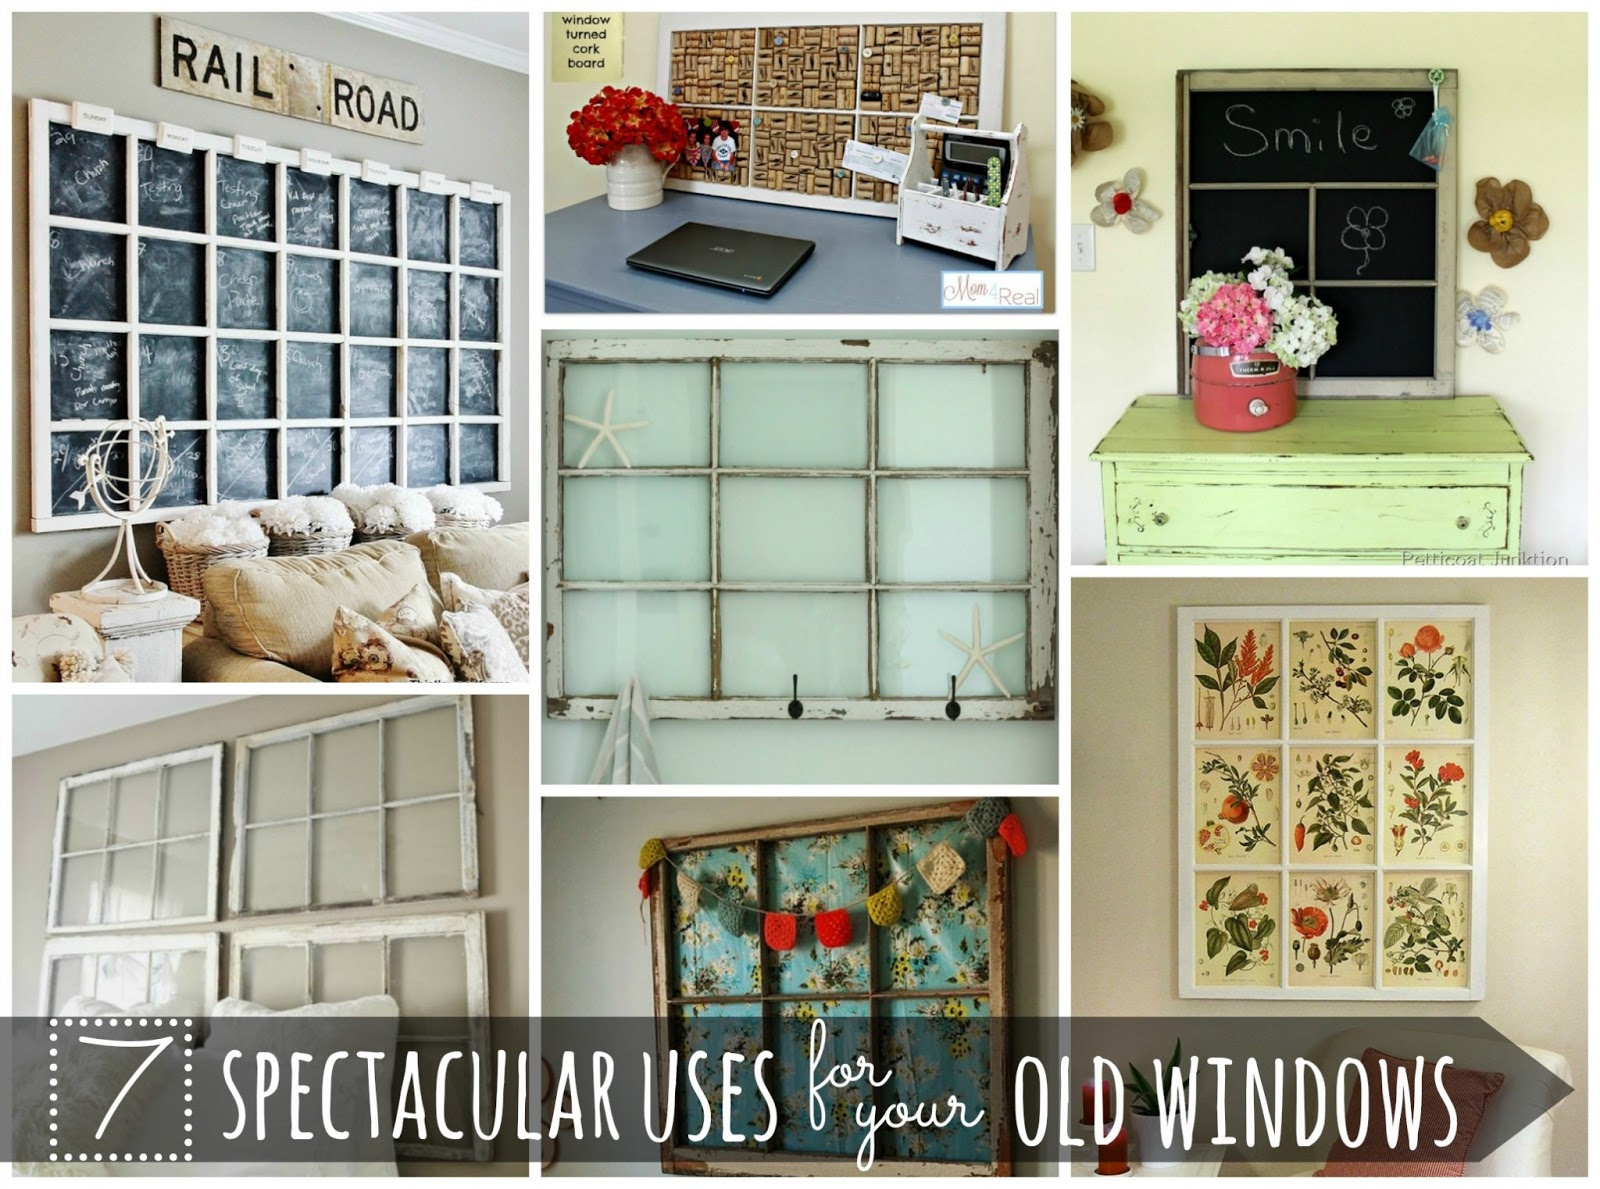 7 Spectacular Uses for Old Windows oldwindows